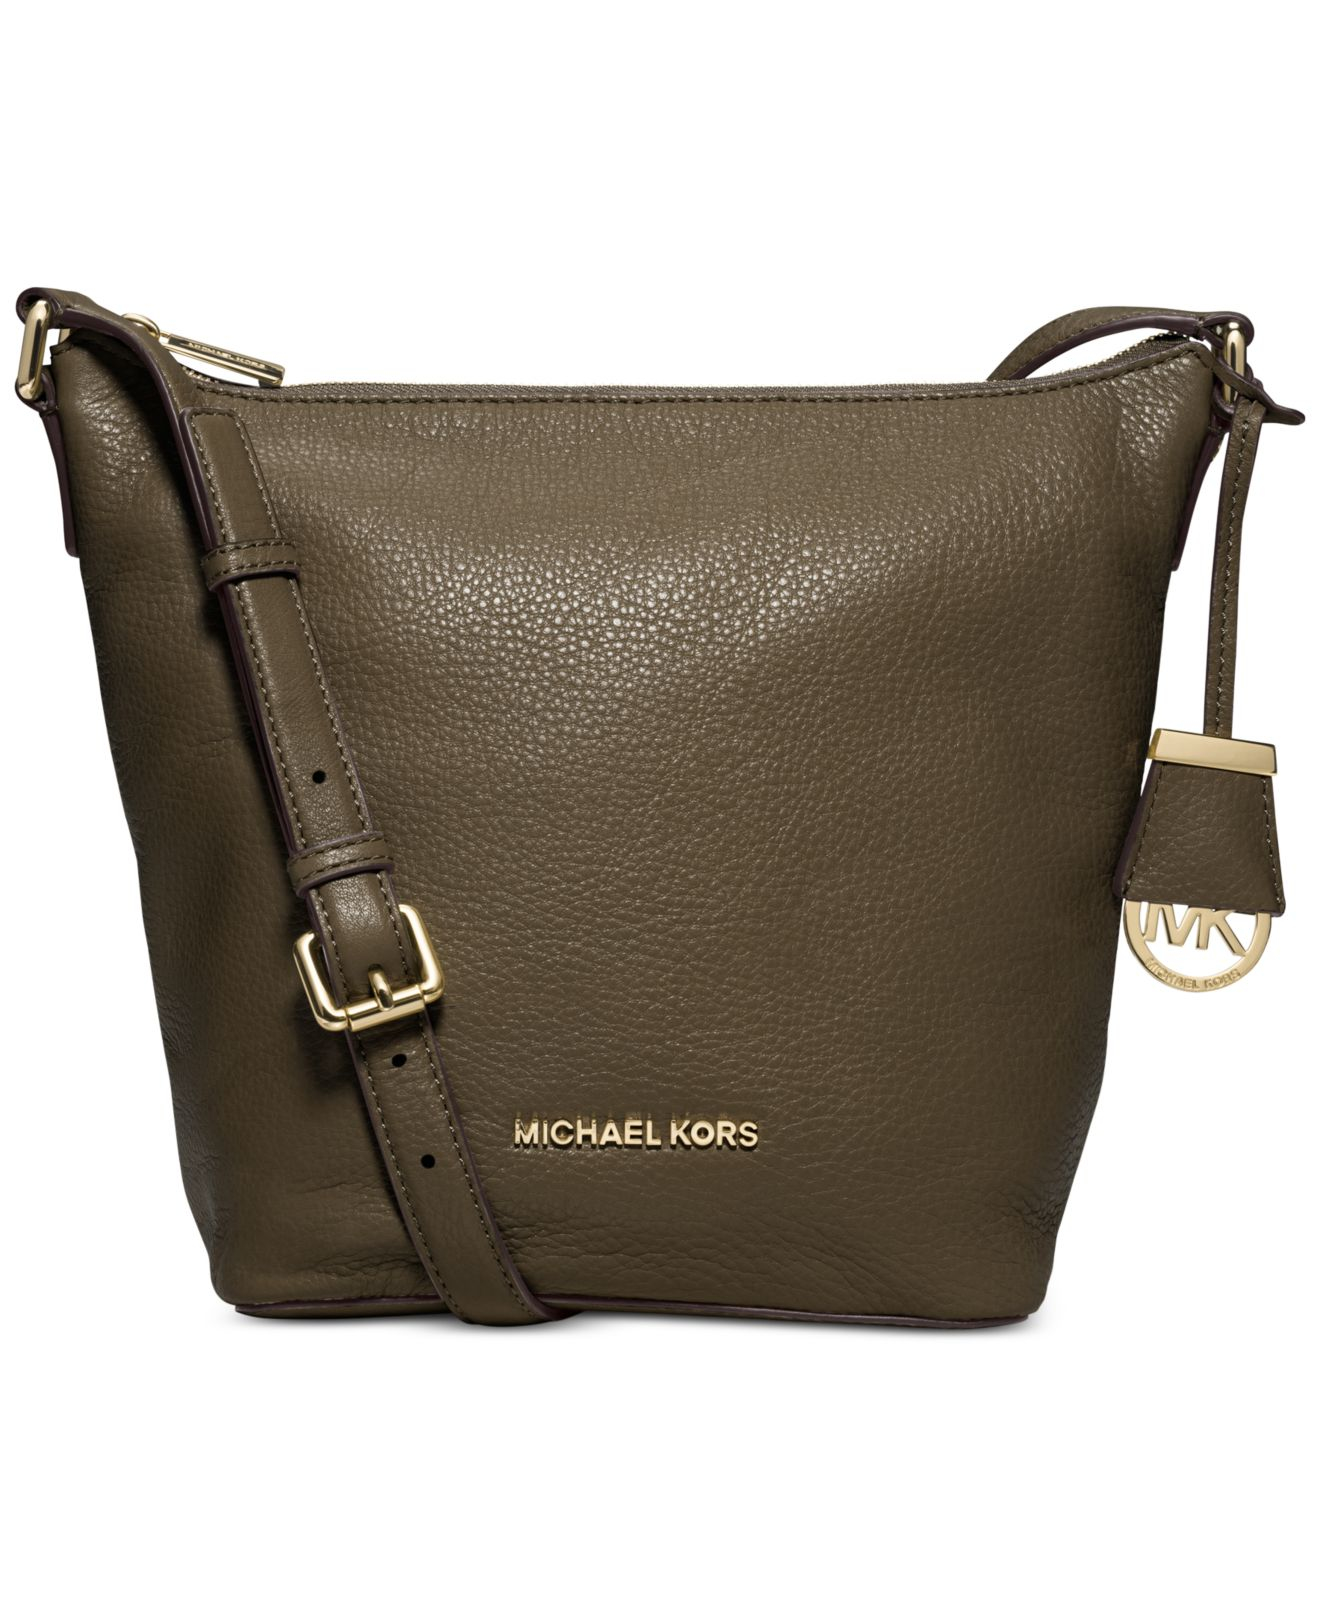 06c3249a92b3 ... Michael kors Michael Bedford Medium Messenger Bag in Green ...